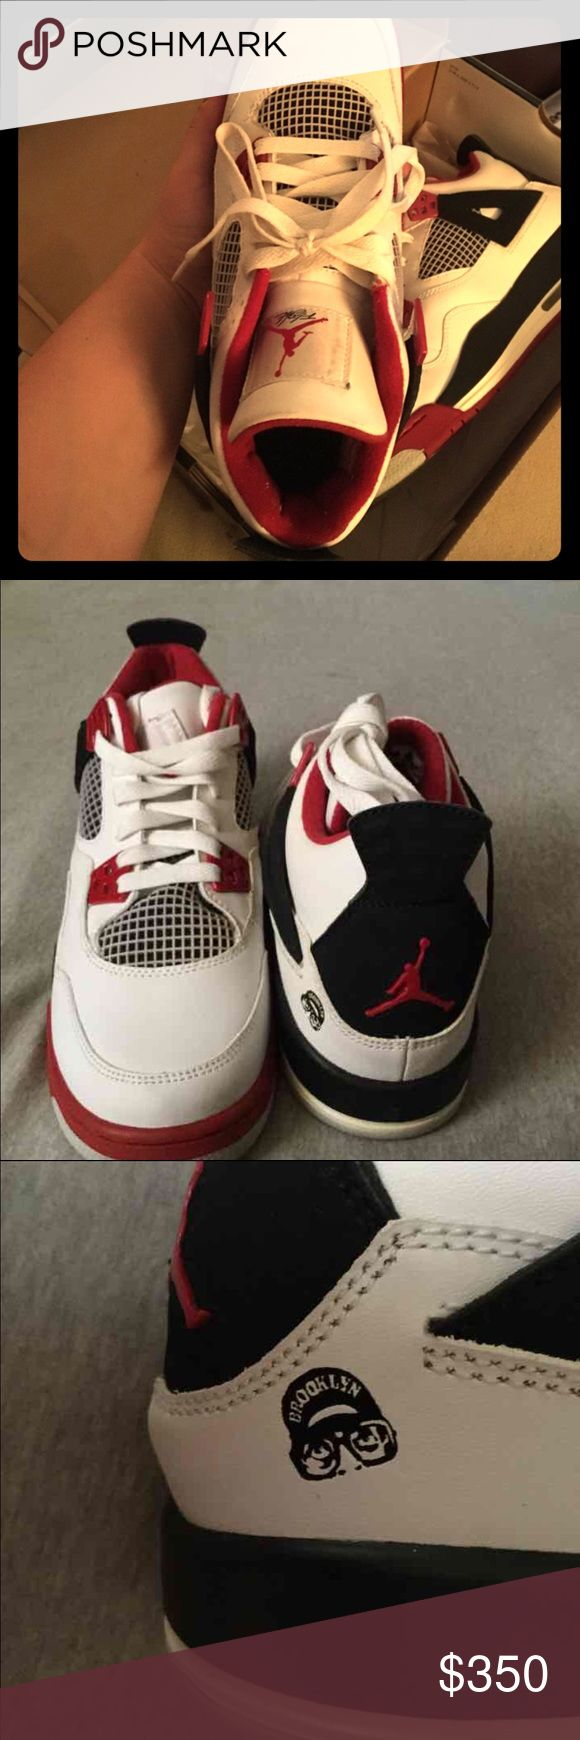 Air Jordan 4 Retro white/red/black 2006 Spike Lee Size 7Y fits size 8.5 and 9 in woman. Original Air Jordan  4 retro Spike Lee from 2006. Rare and Authentic. Get these while they are available. Great condition rare to find. These are stored in original box. Jordan Shoes Sneakers